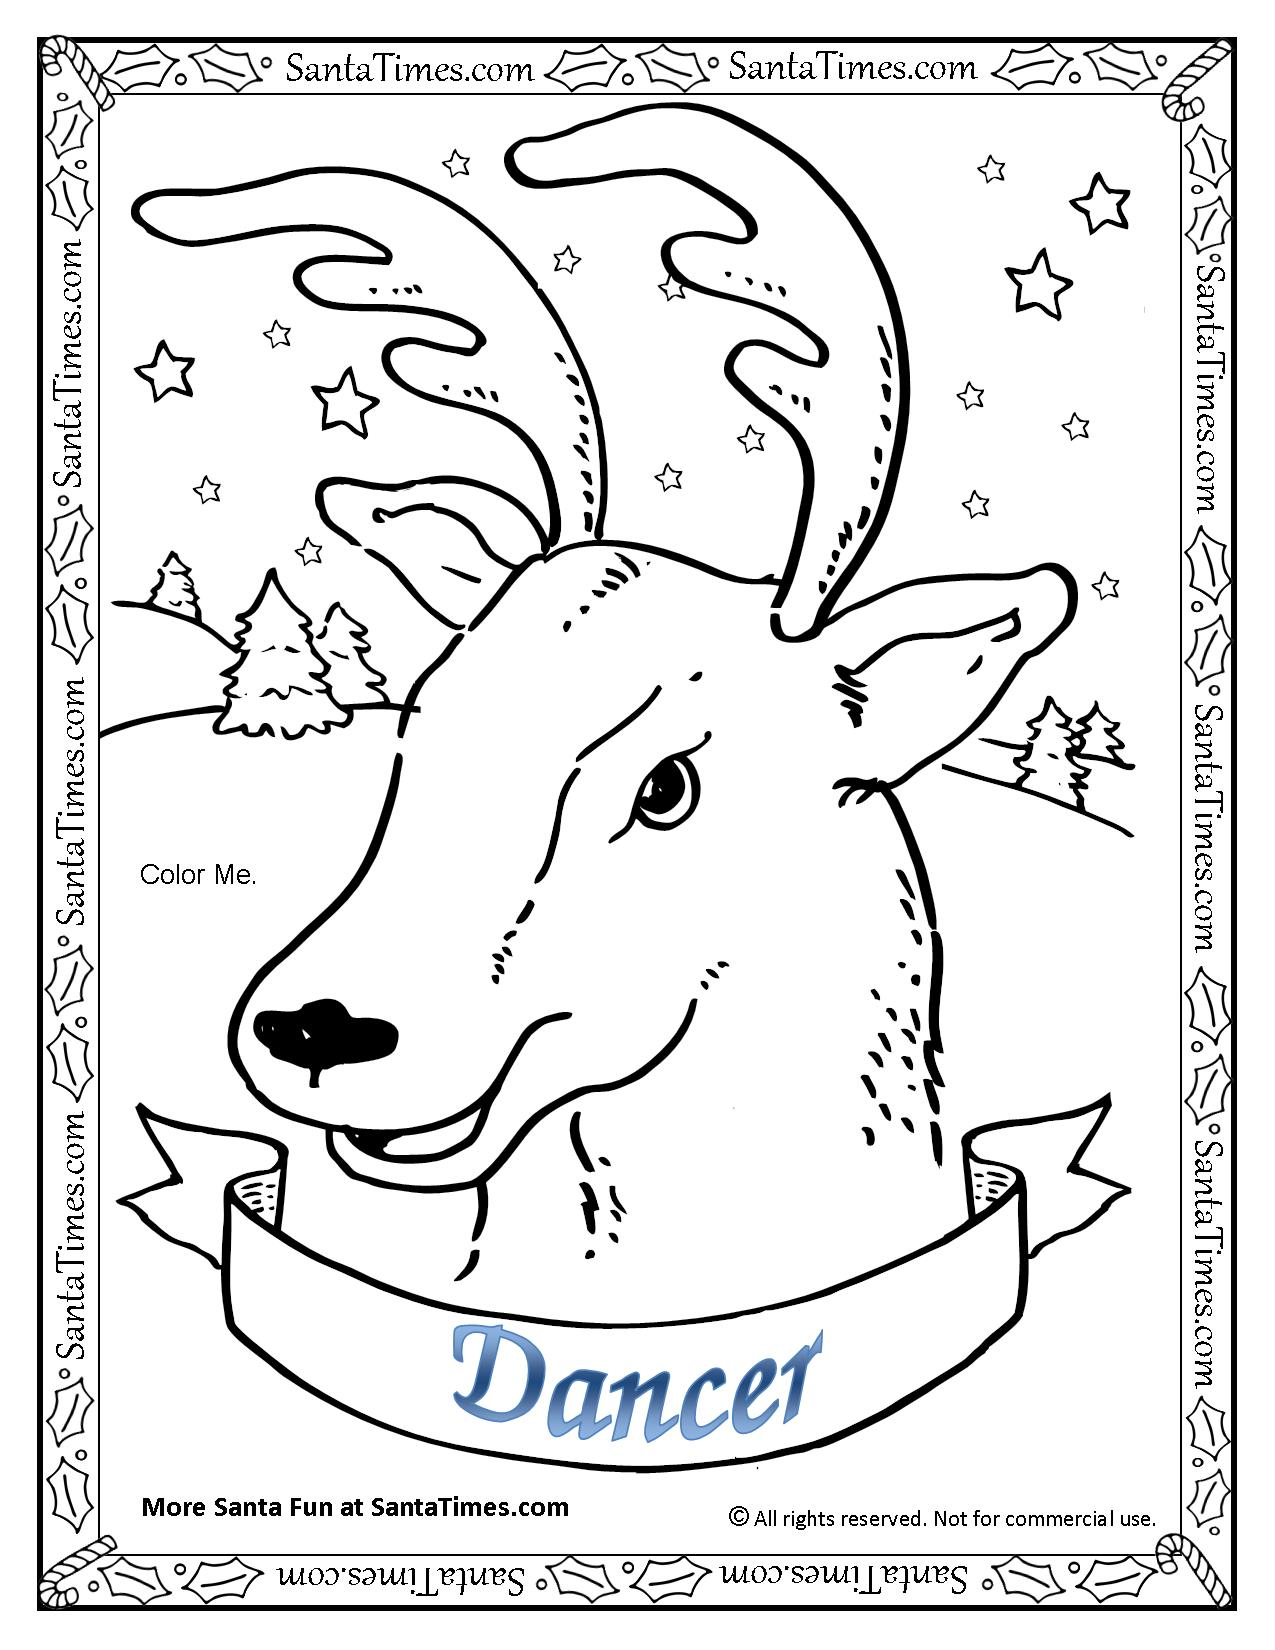 Dancer The Reindeer